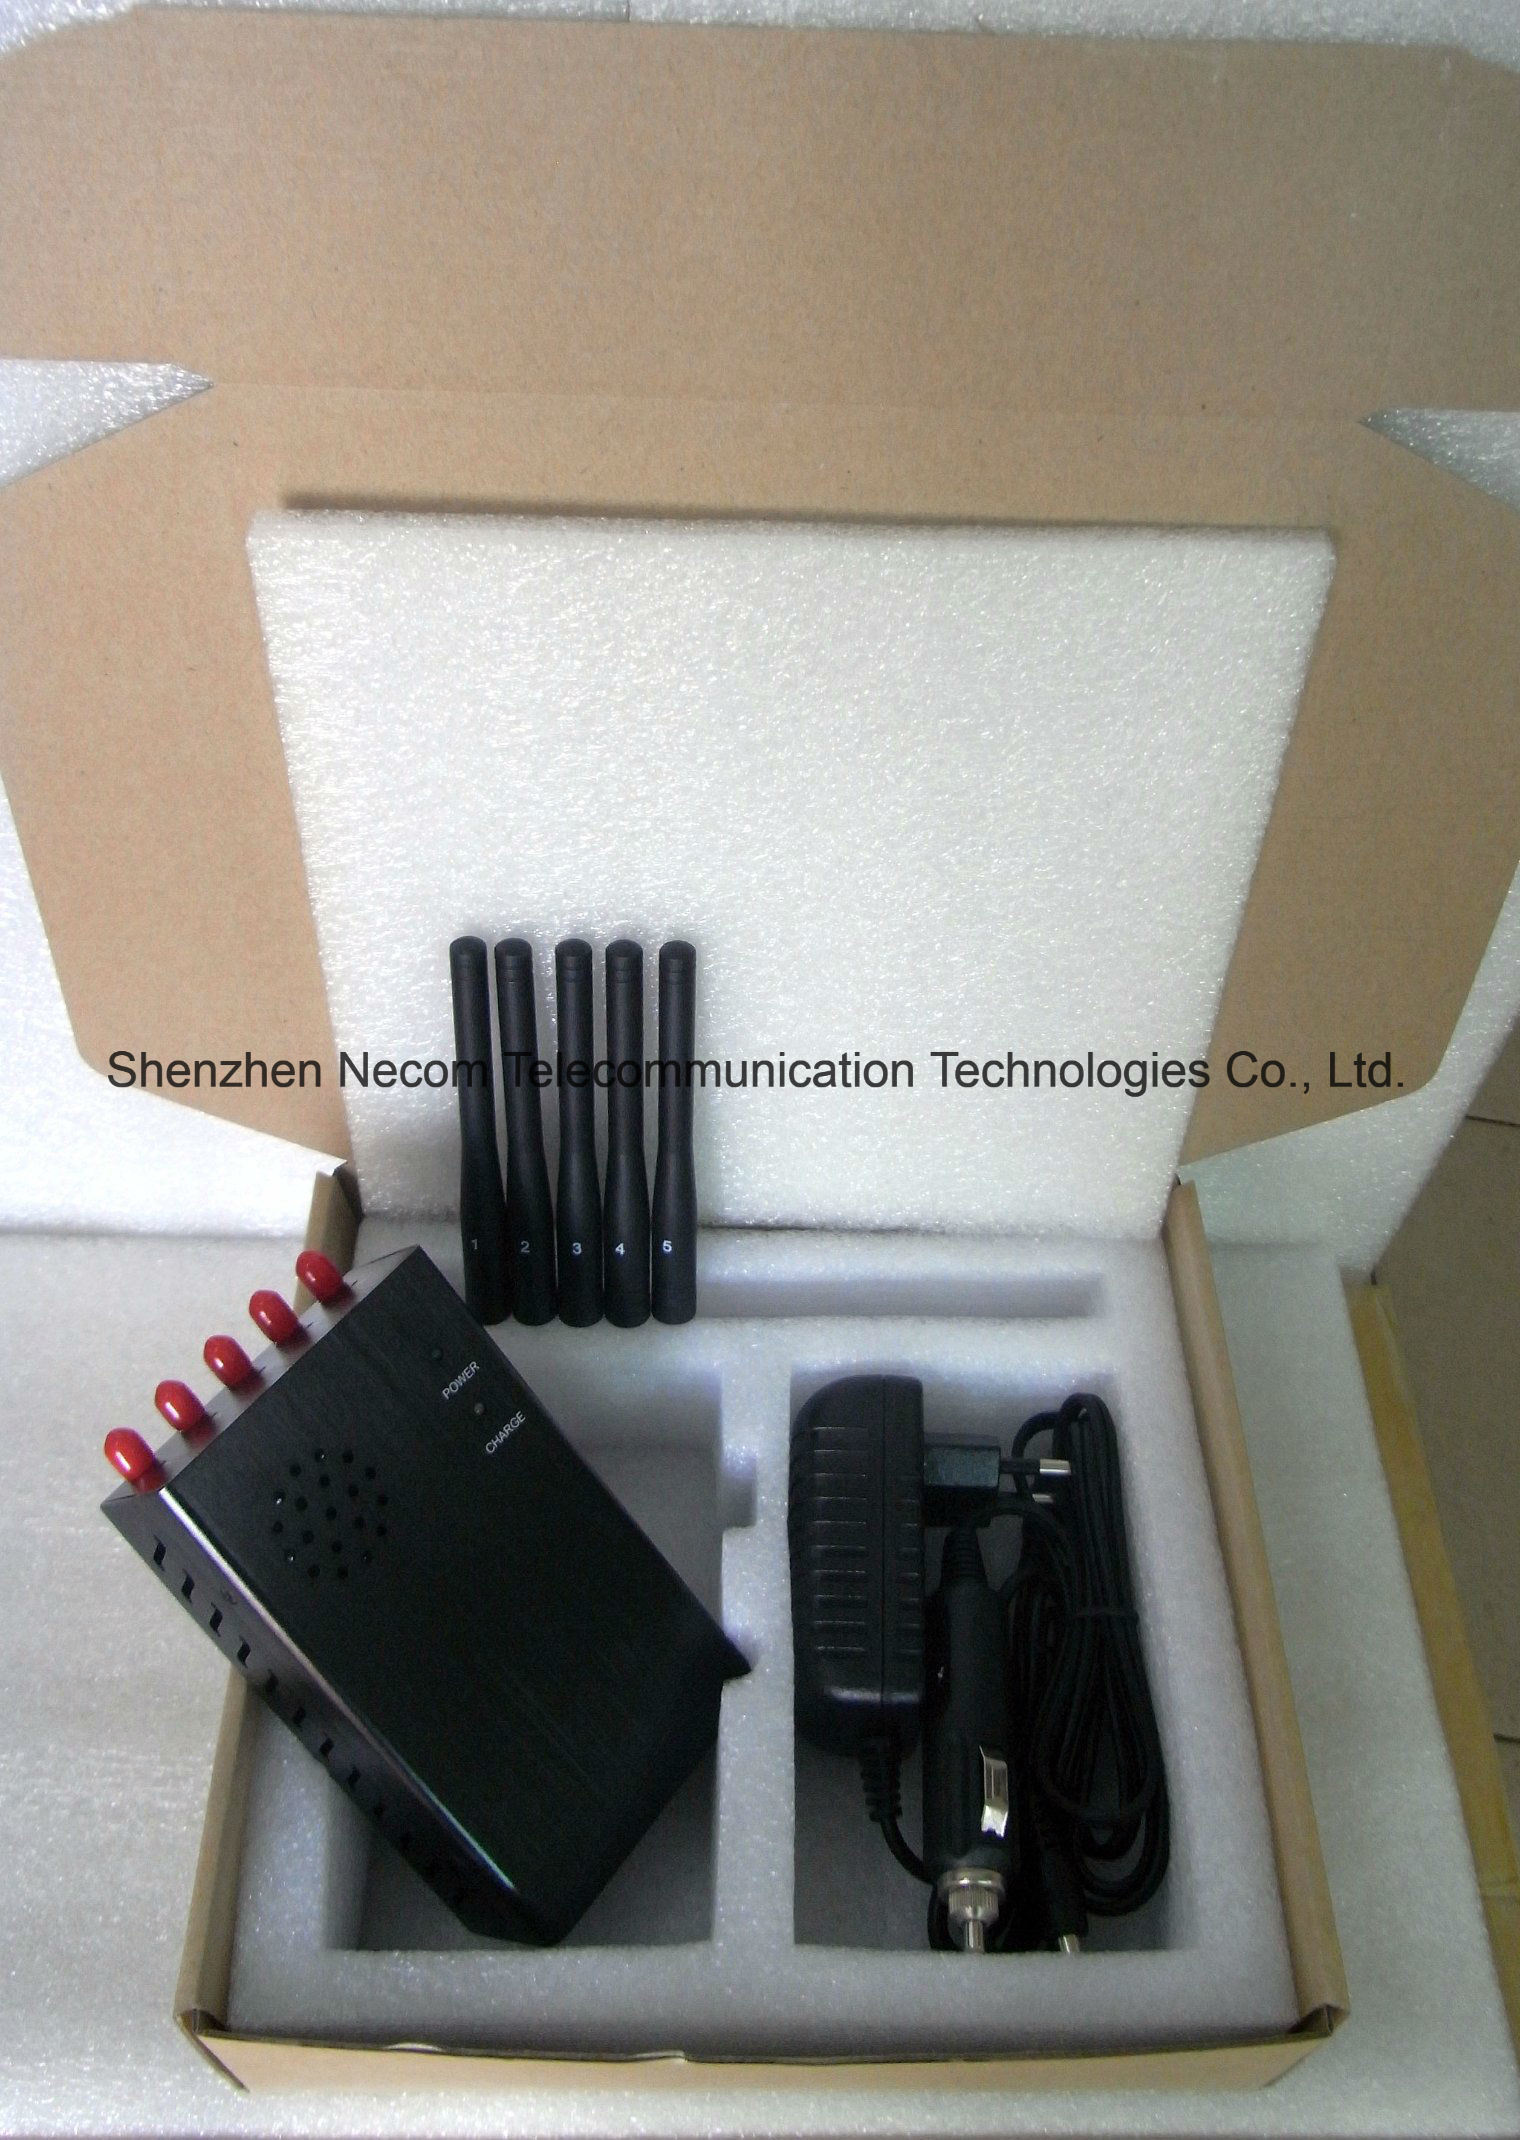 phone jammer detector batteries - China 2g+3G+Gpsl1+Lojack 5 Antennas Signal Blockers - China 2g+3G+Gpsl1+Lojack 5 Antennas Signal Blockers, 5 Band Signal Jammers